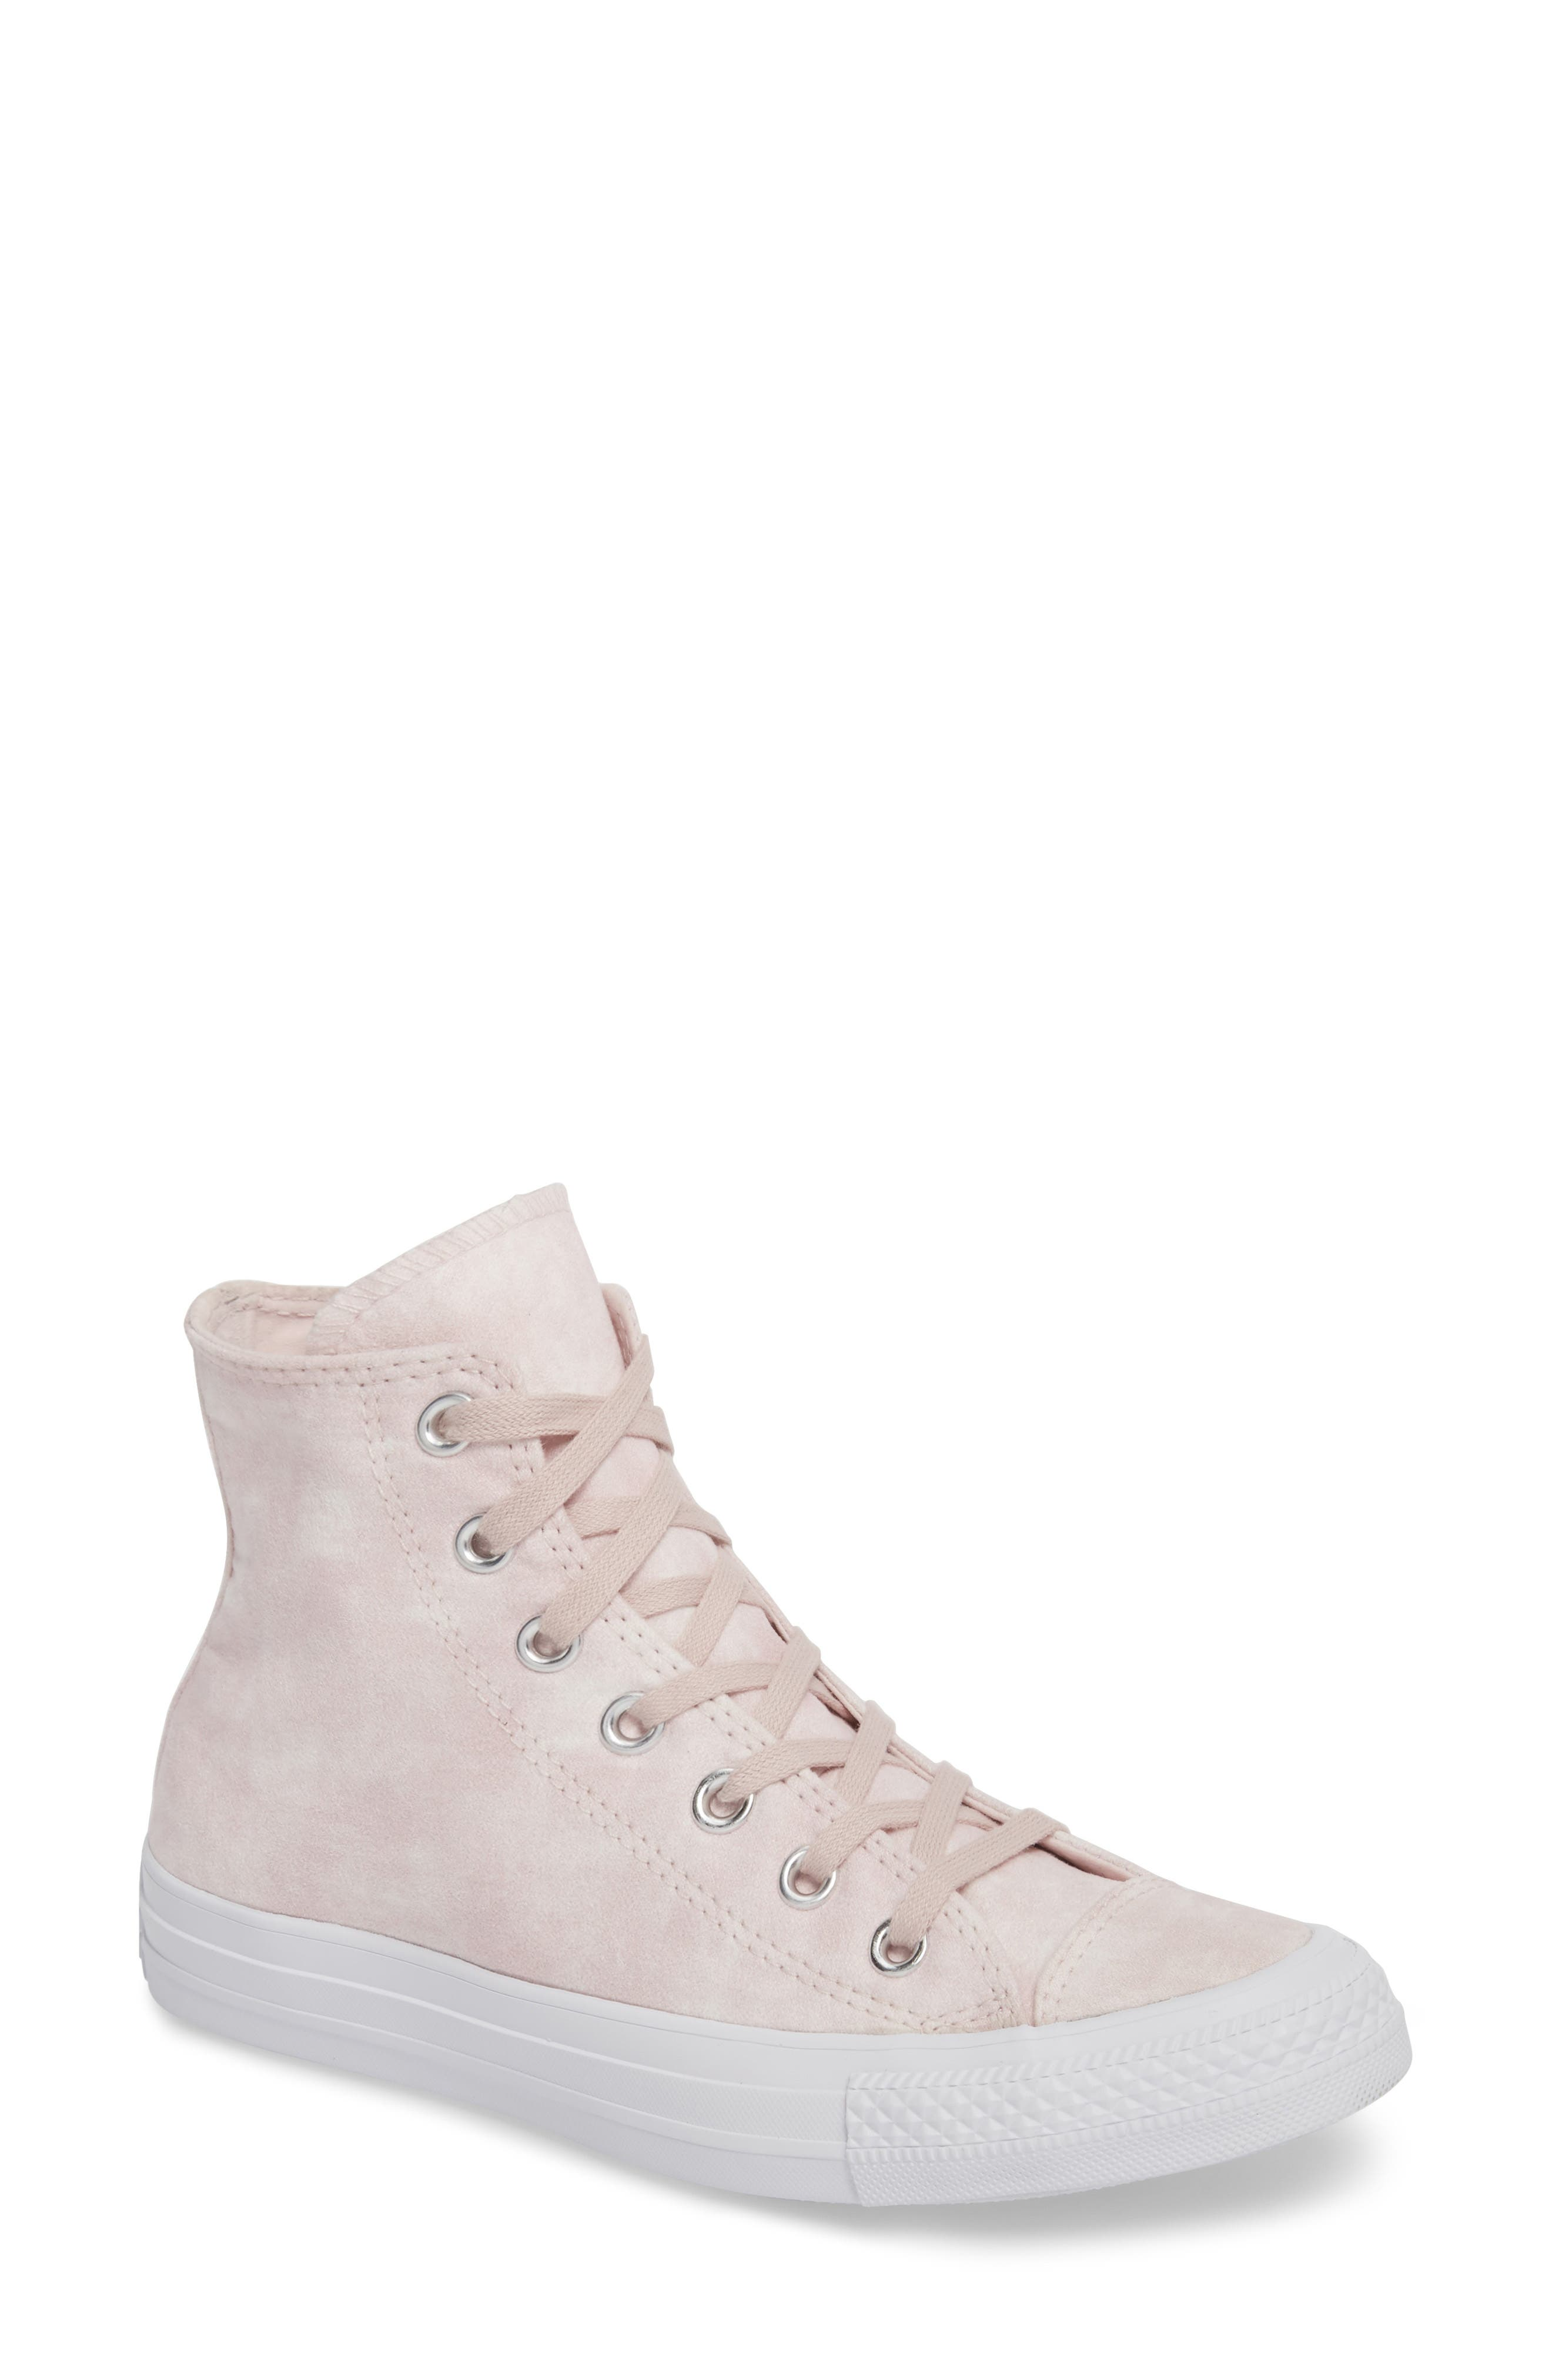 Chuck Taylor<sup>®</sup> All Star<sup>®</sup> Peached High Top Sneaker,                         Main,                         color, 653